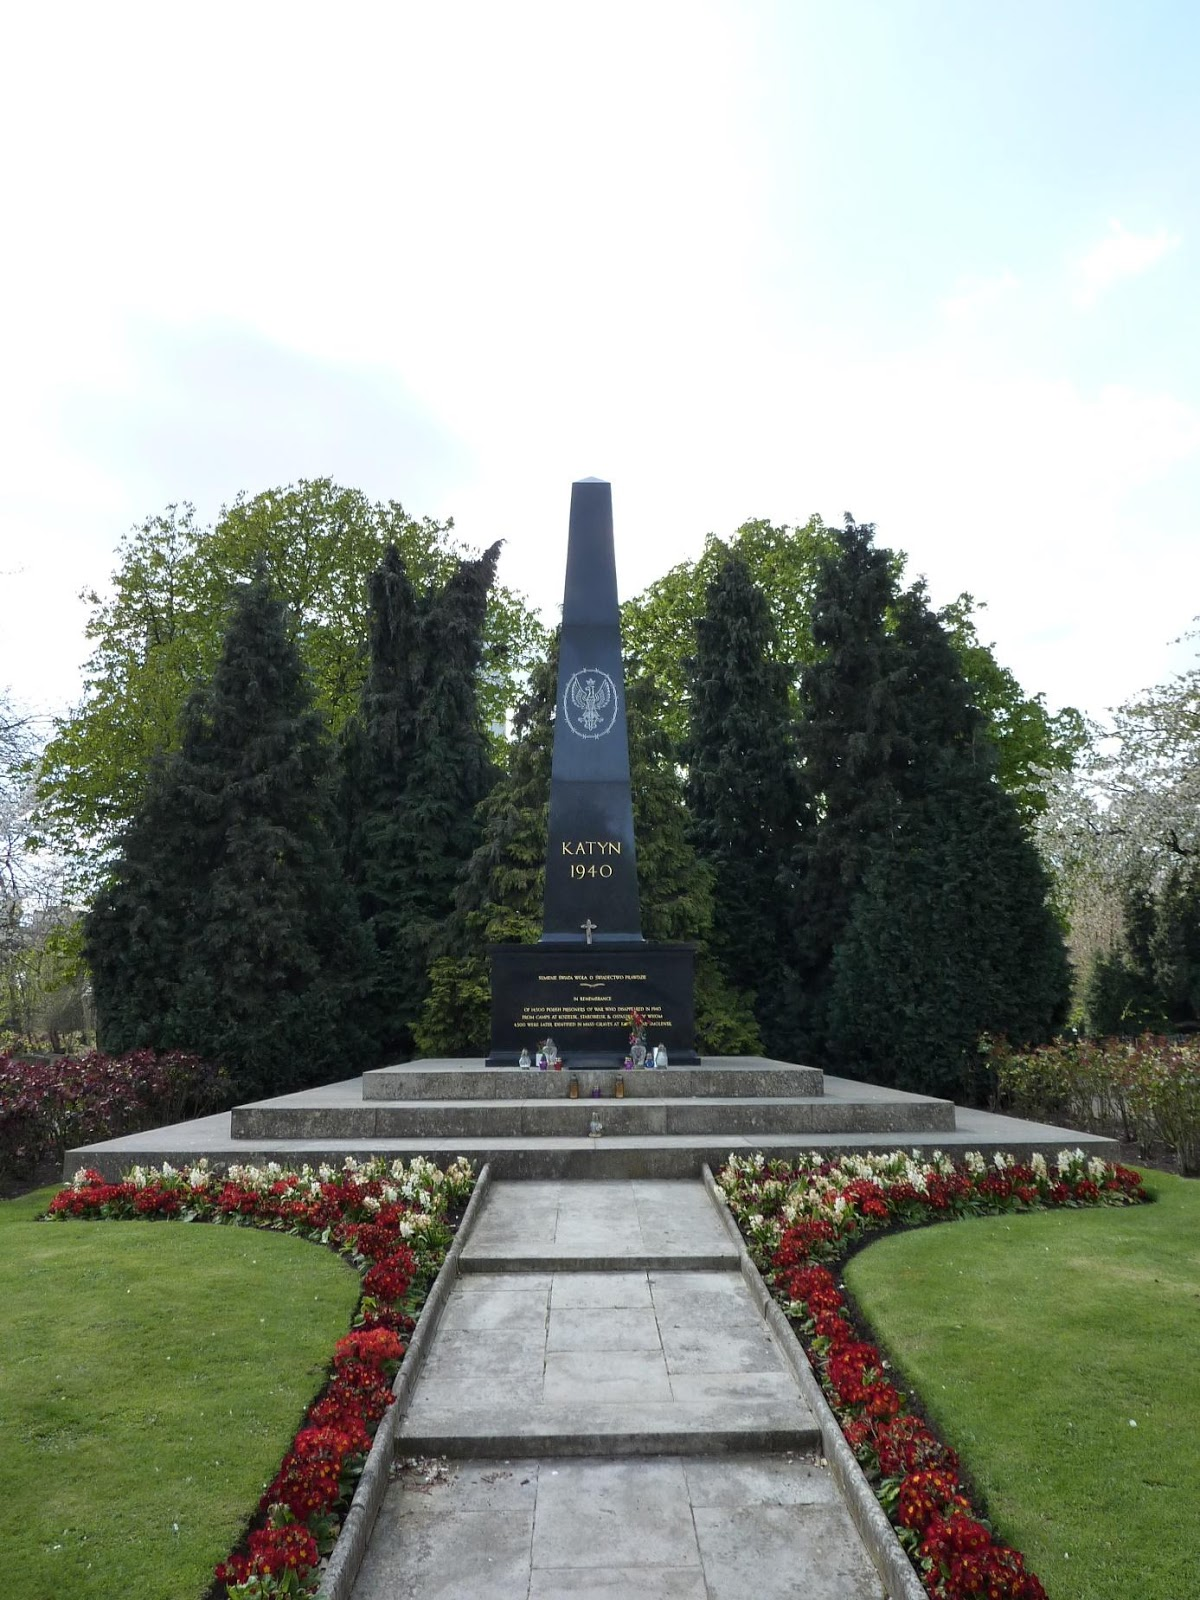 https://upload.wikimedia.org/wikipedia/commons/0/01/Katyn_memorial_in_Gunnersbury_Cemetery_%287282172884%29.jpg